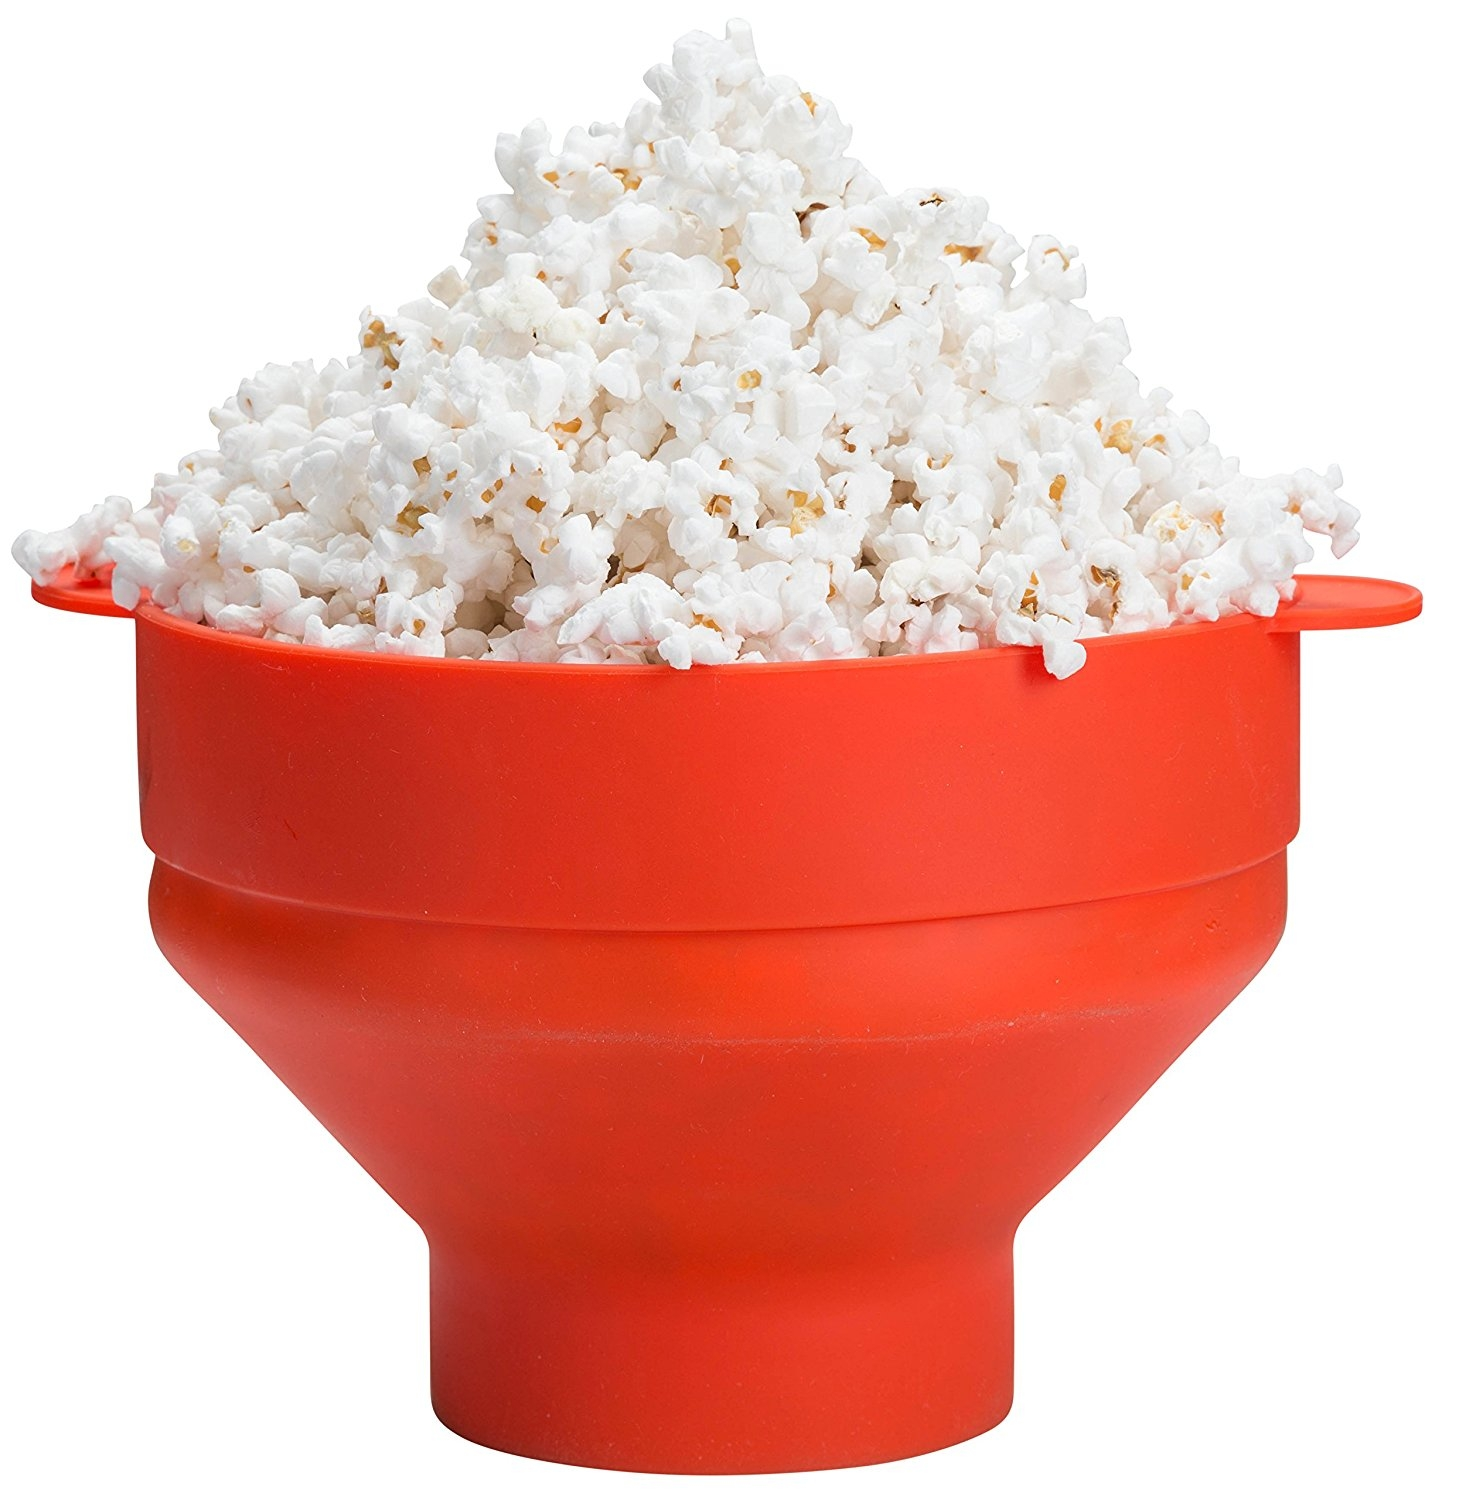 Microwave Silicone Collapsible Popcorn Popper, by Kitchen Winners (Orange)